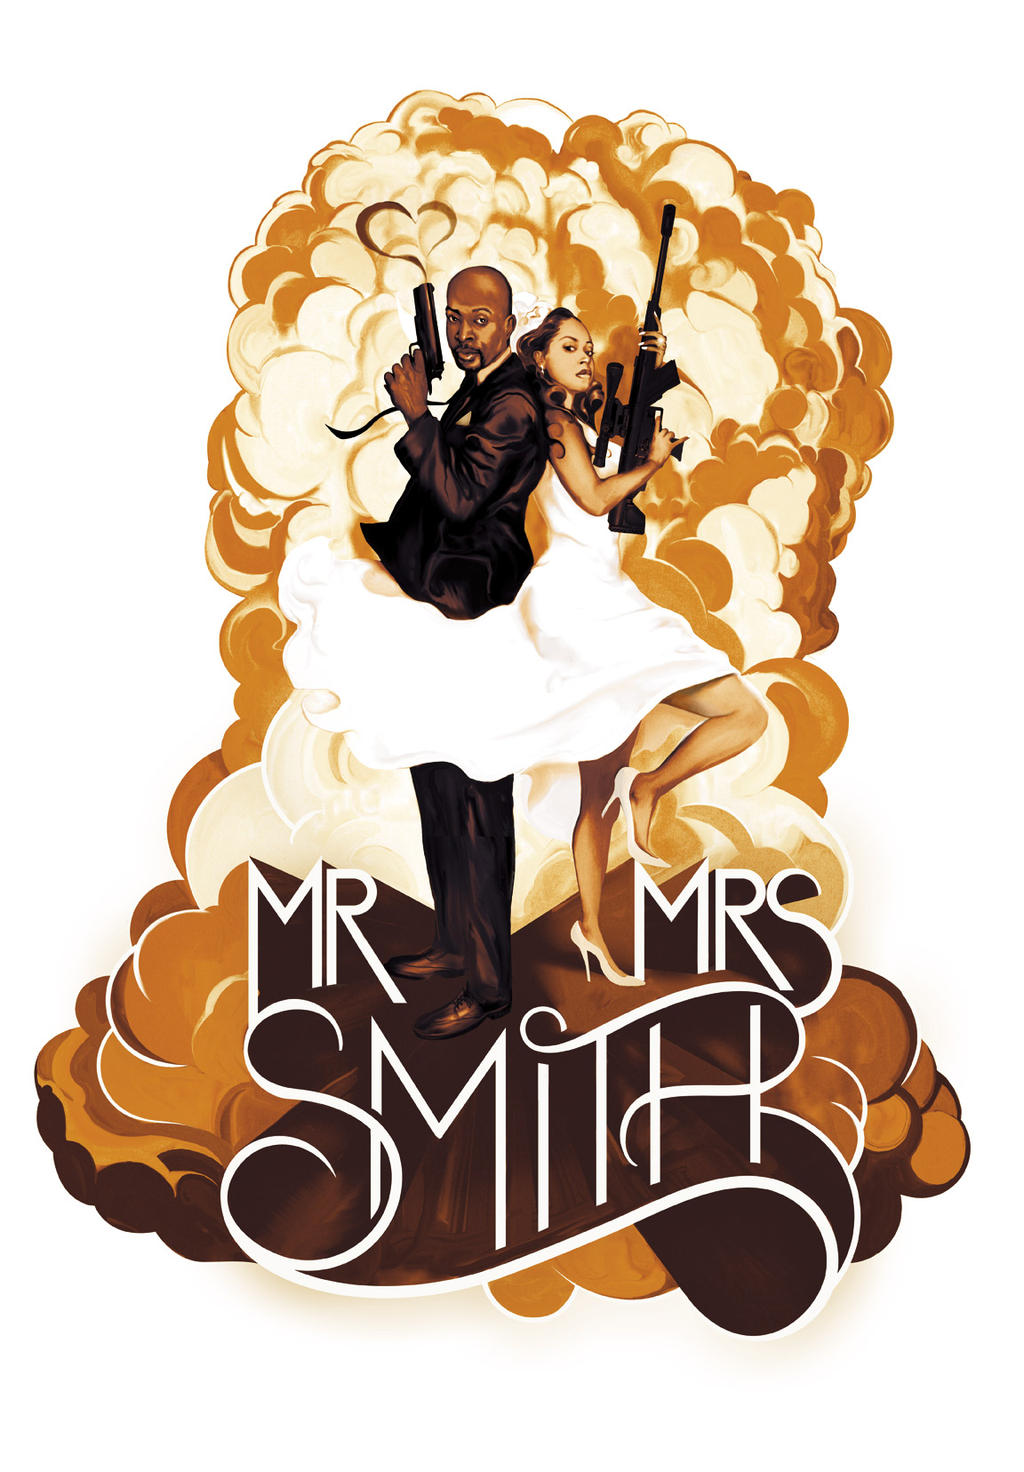 Mr and Mrs Smith Wedding by deadlymike on DeviantArt